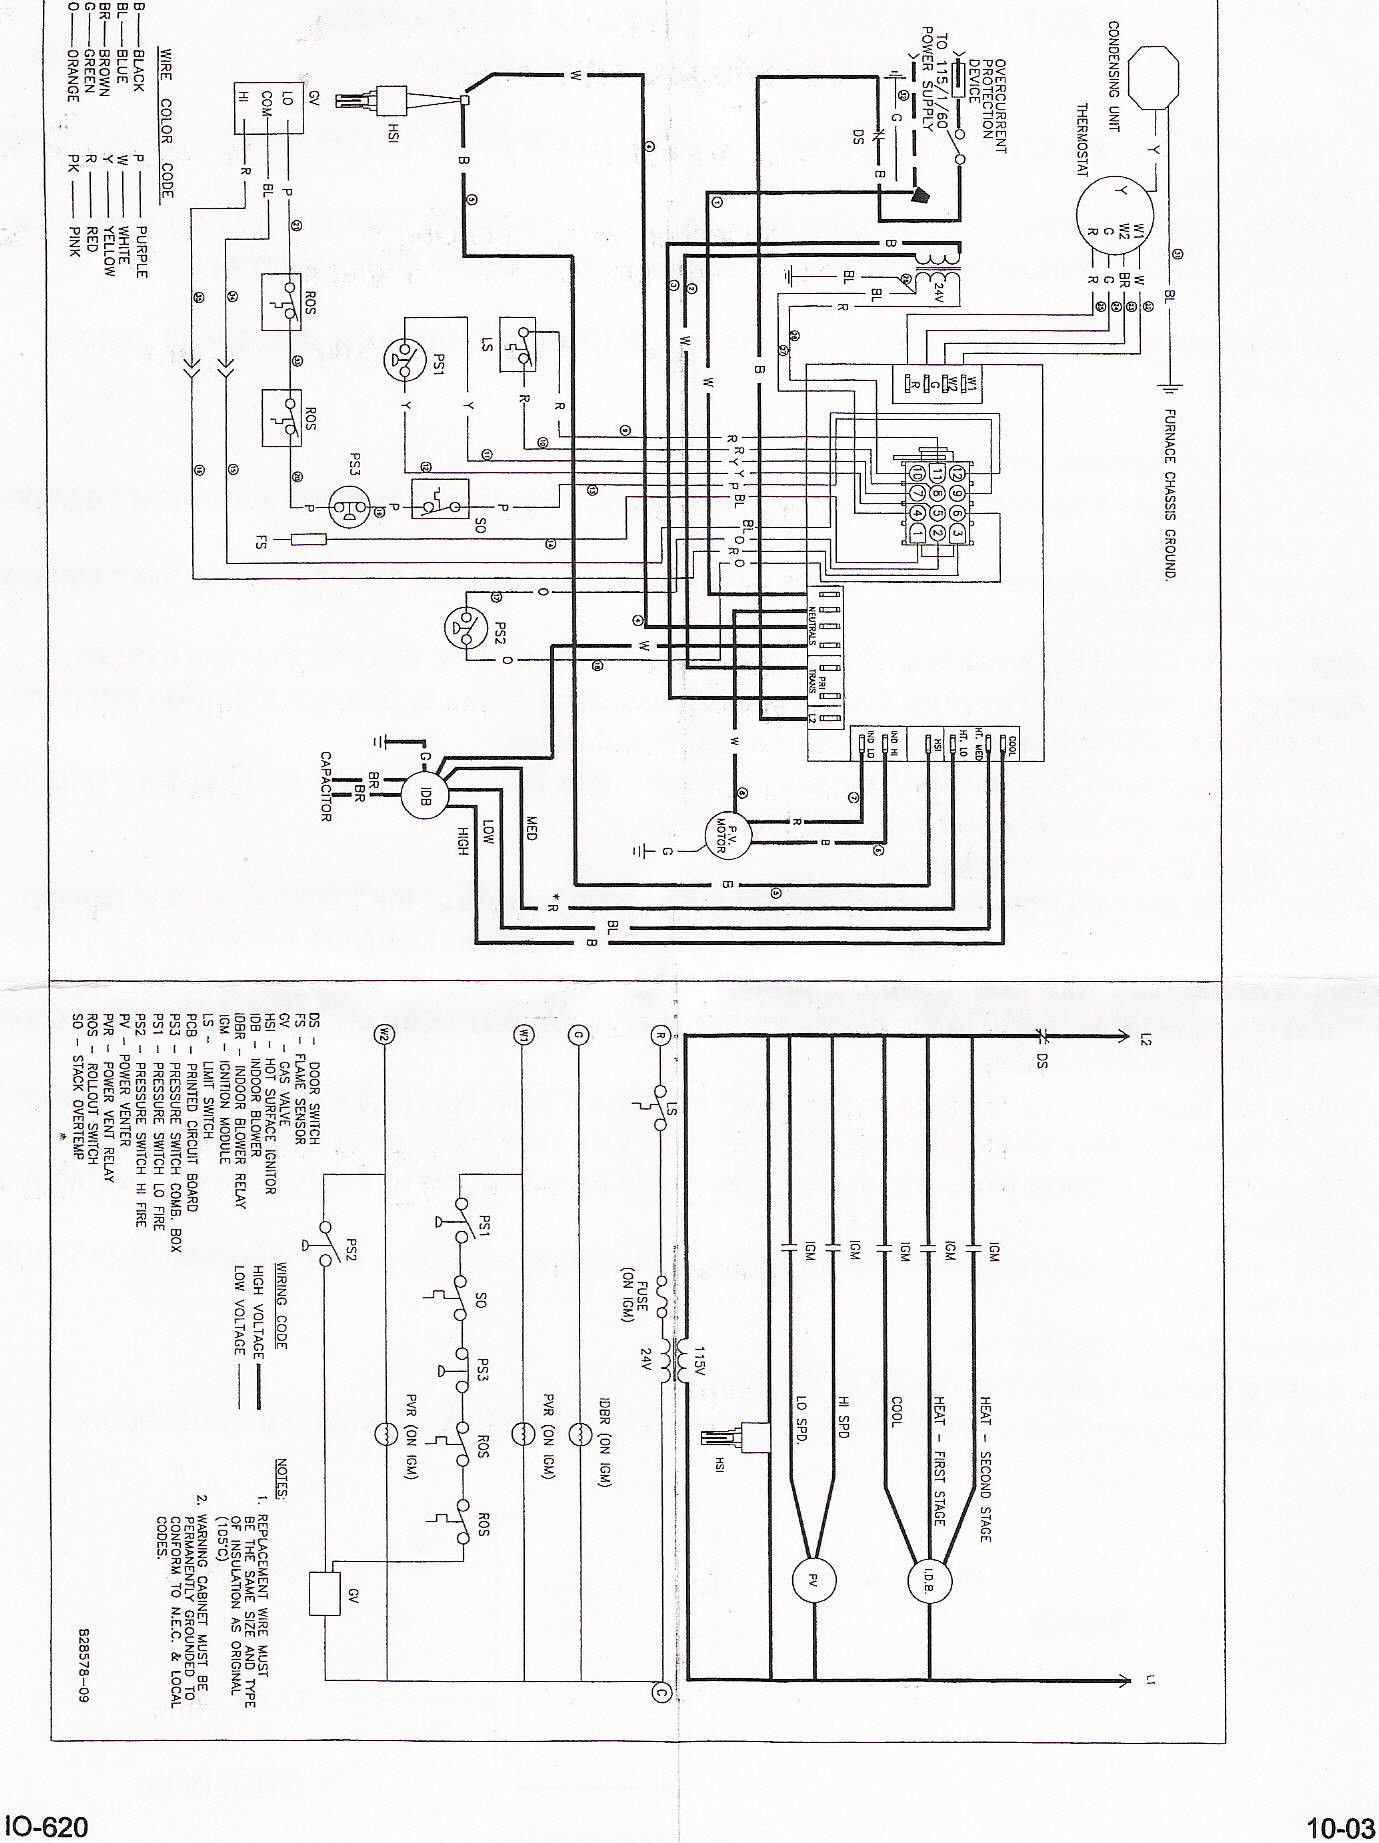 Unique Auto Electrical Diagram #diagram #wiringdiagram #